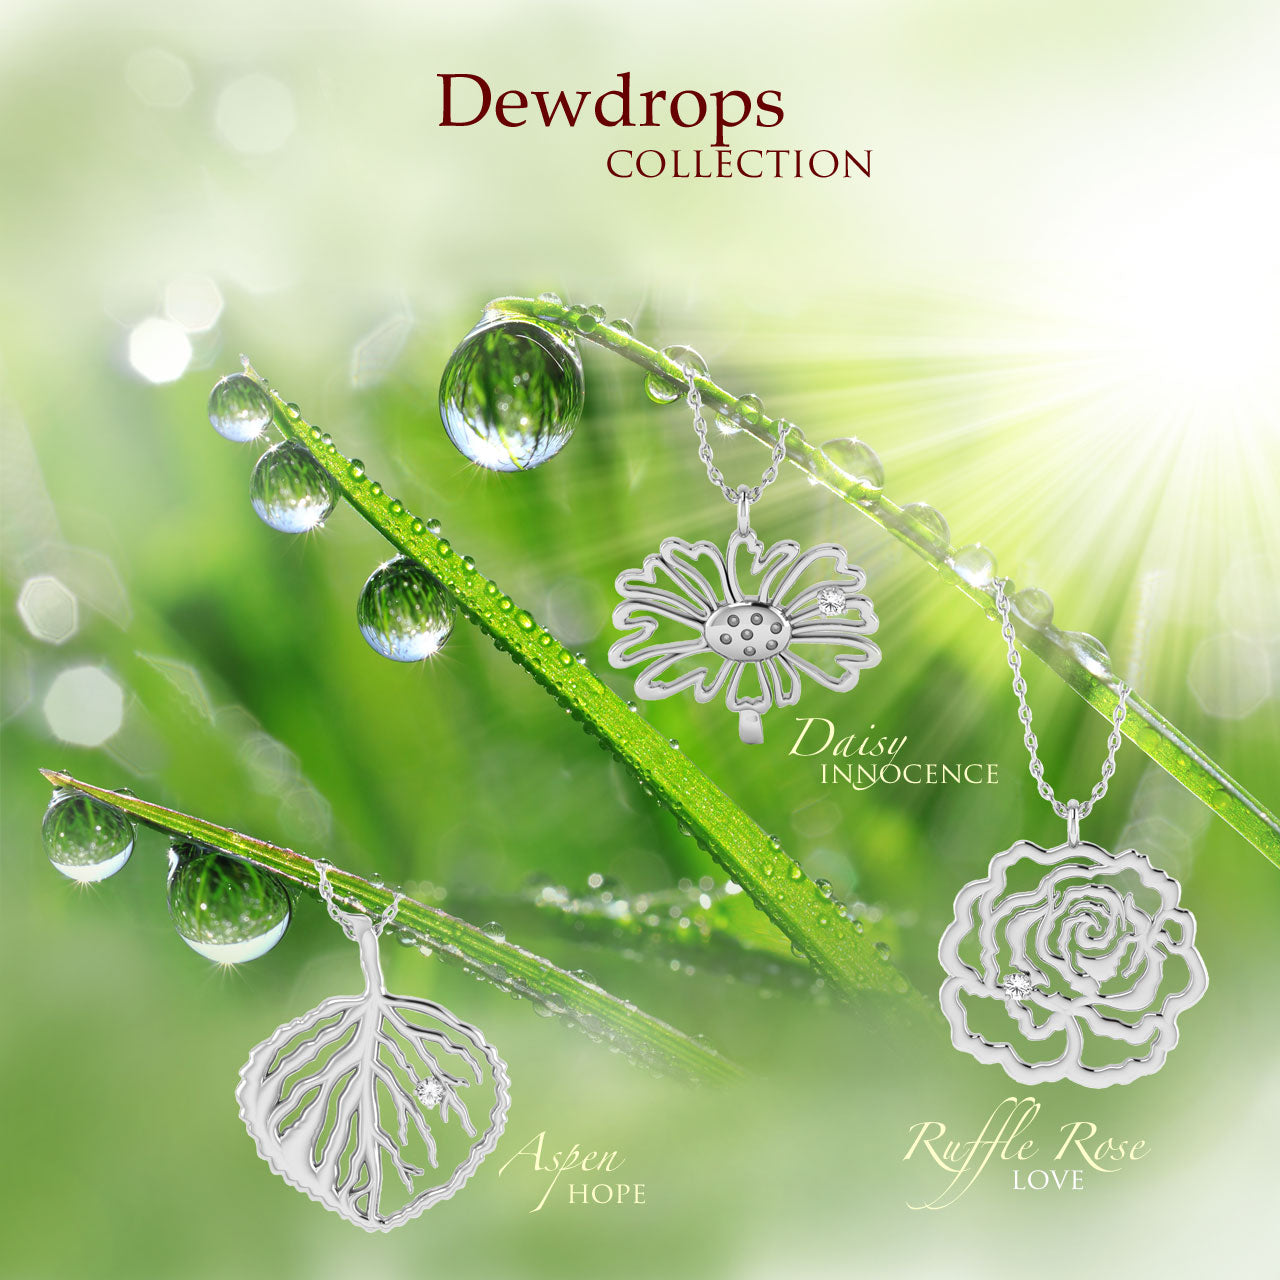 Diamond Dewdrops